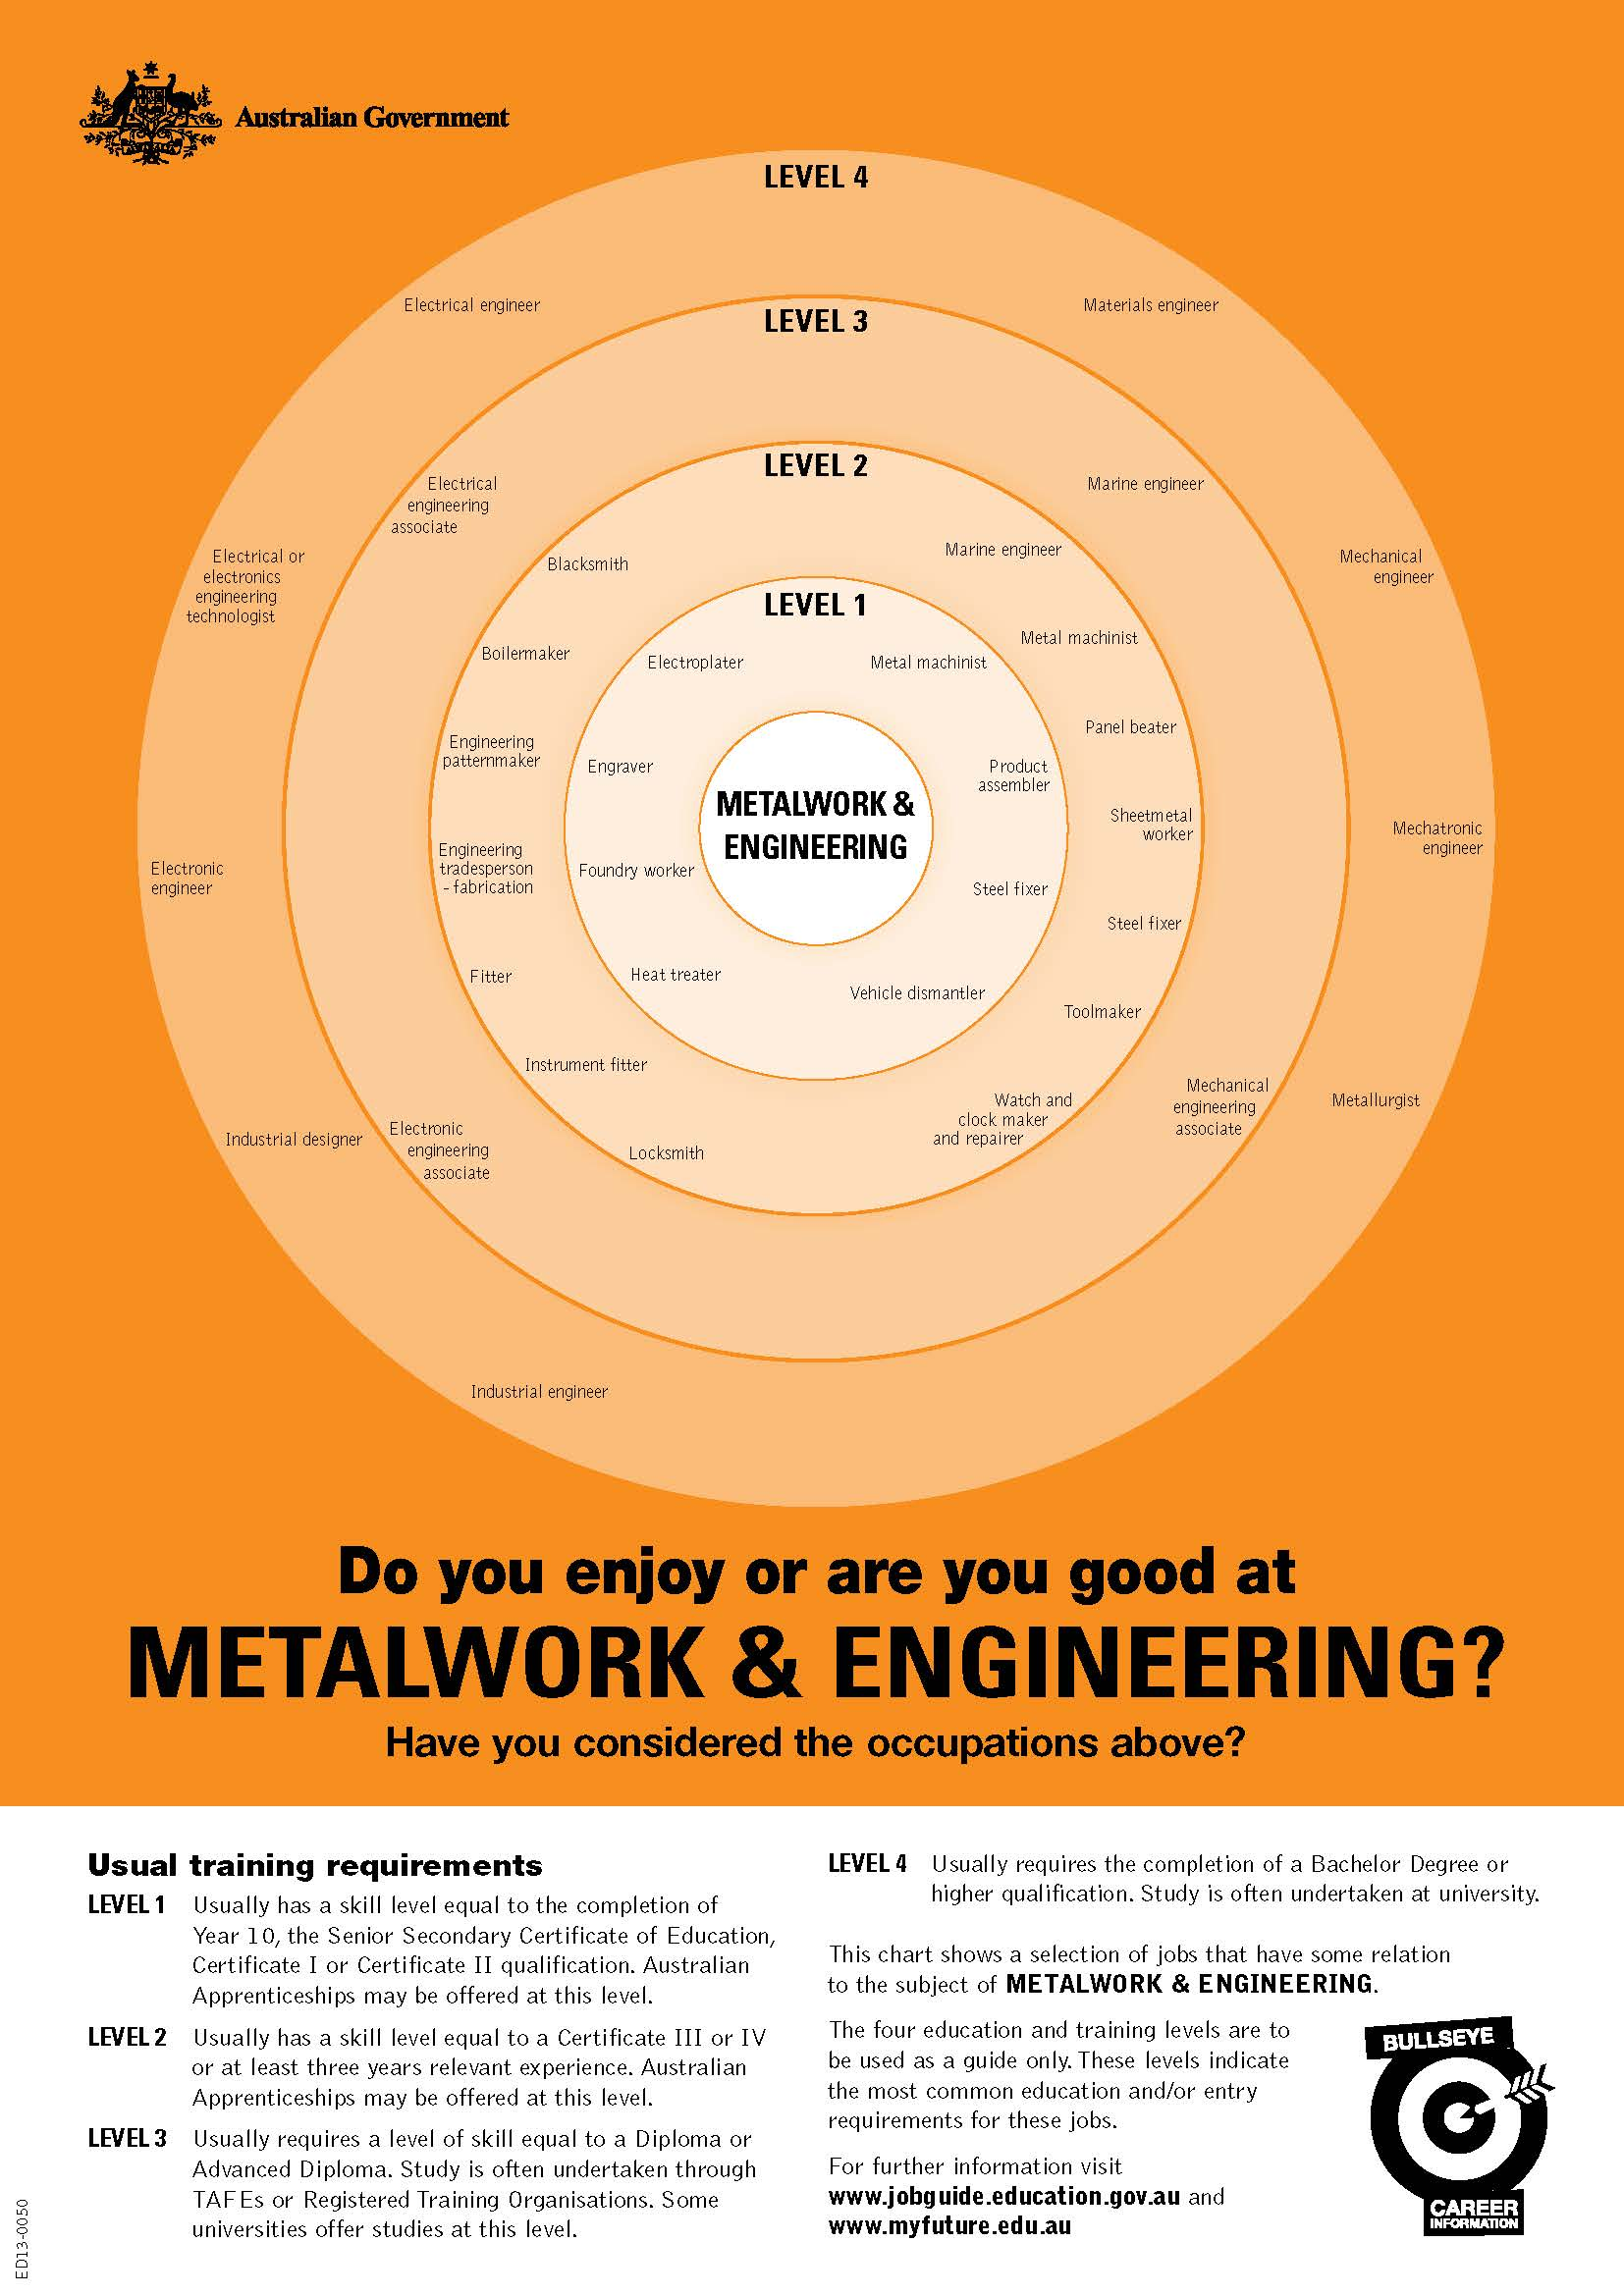 Metalwork and Engineering